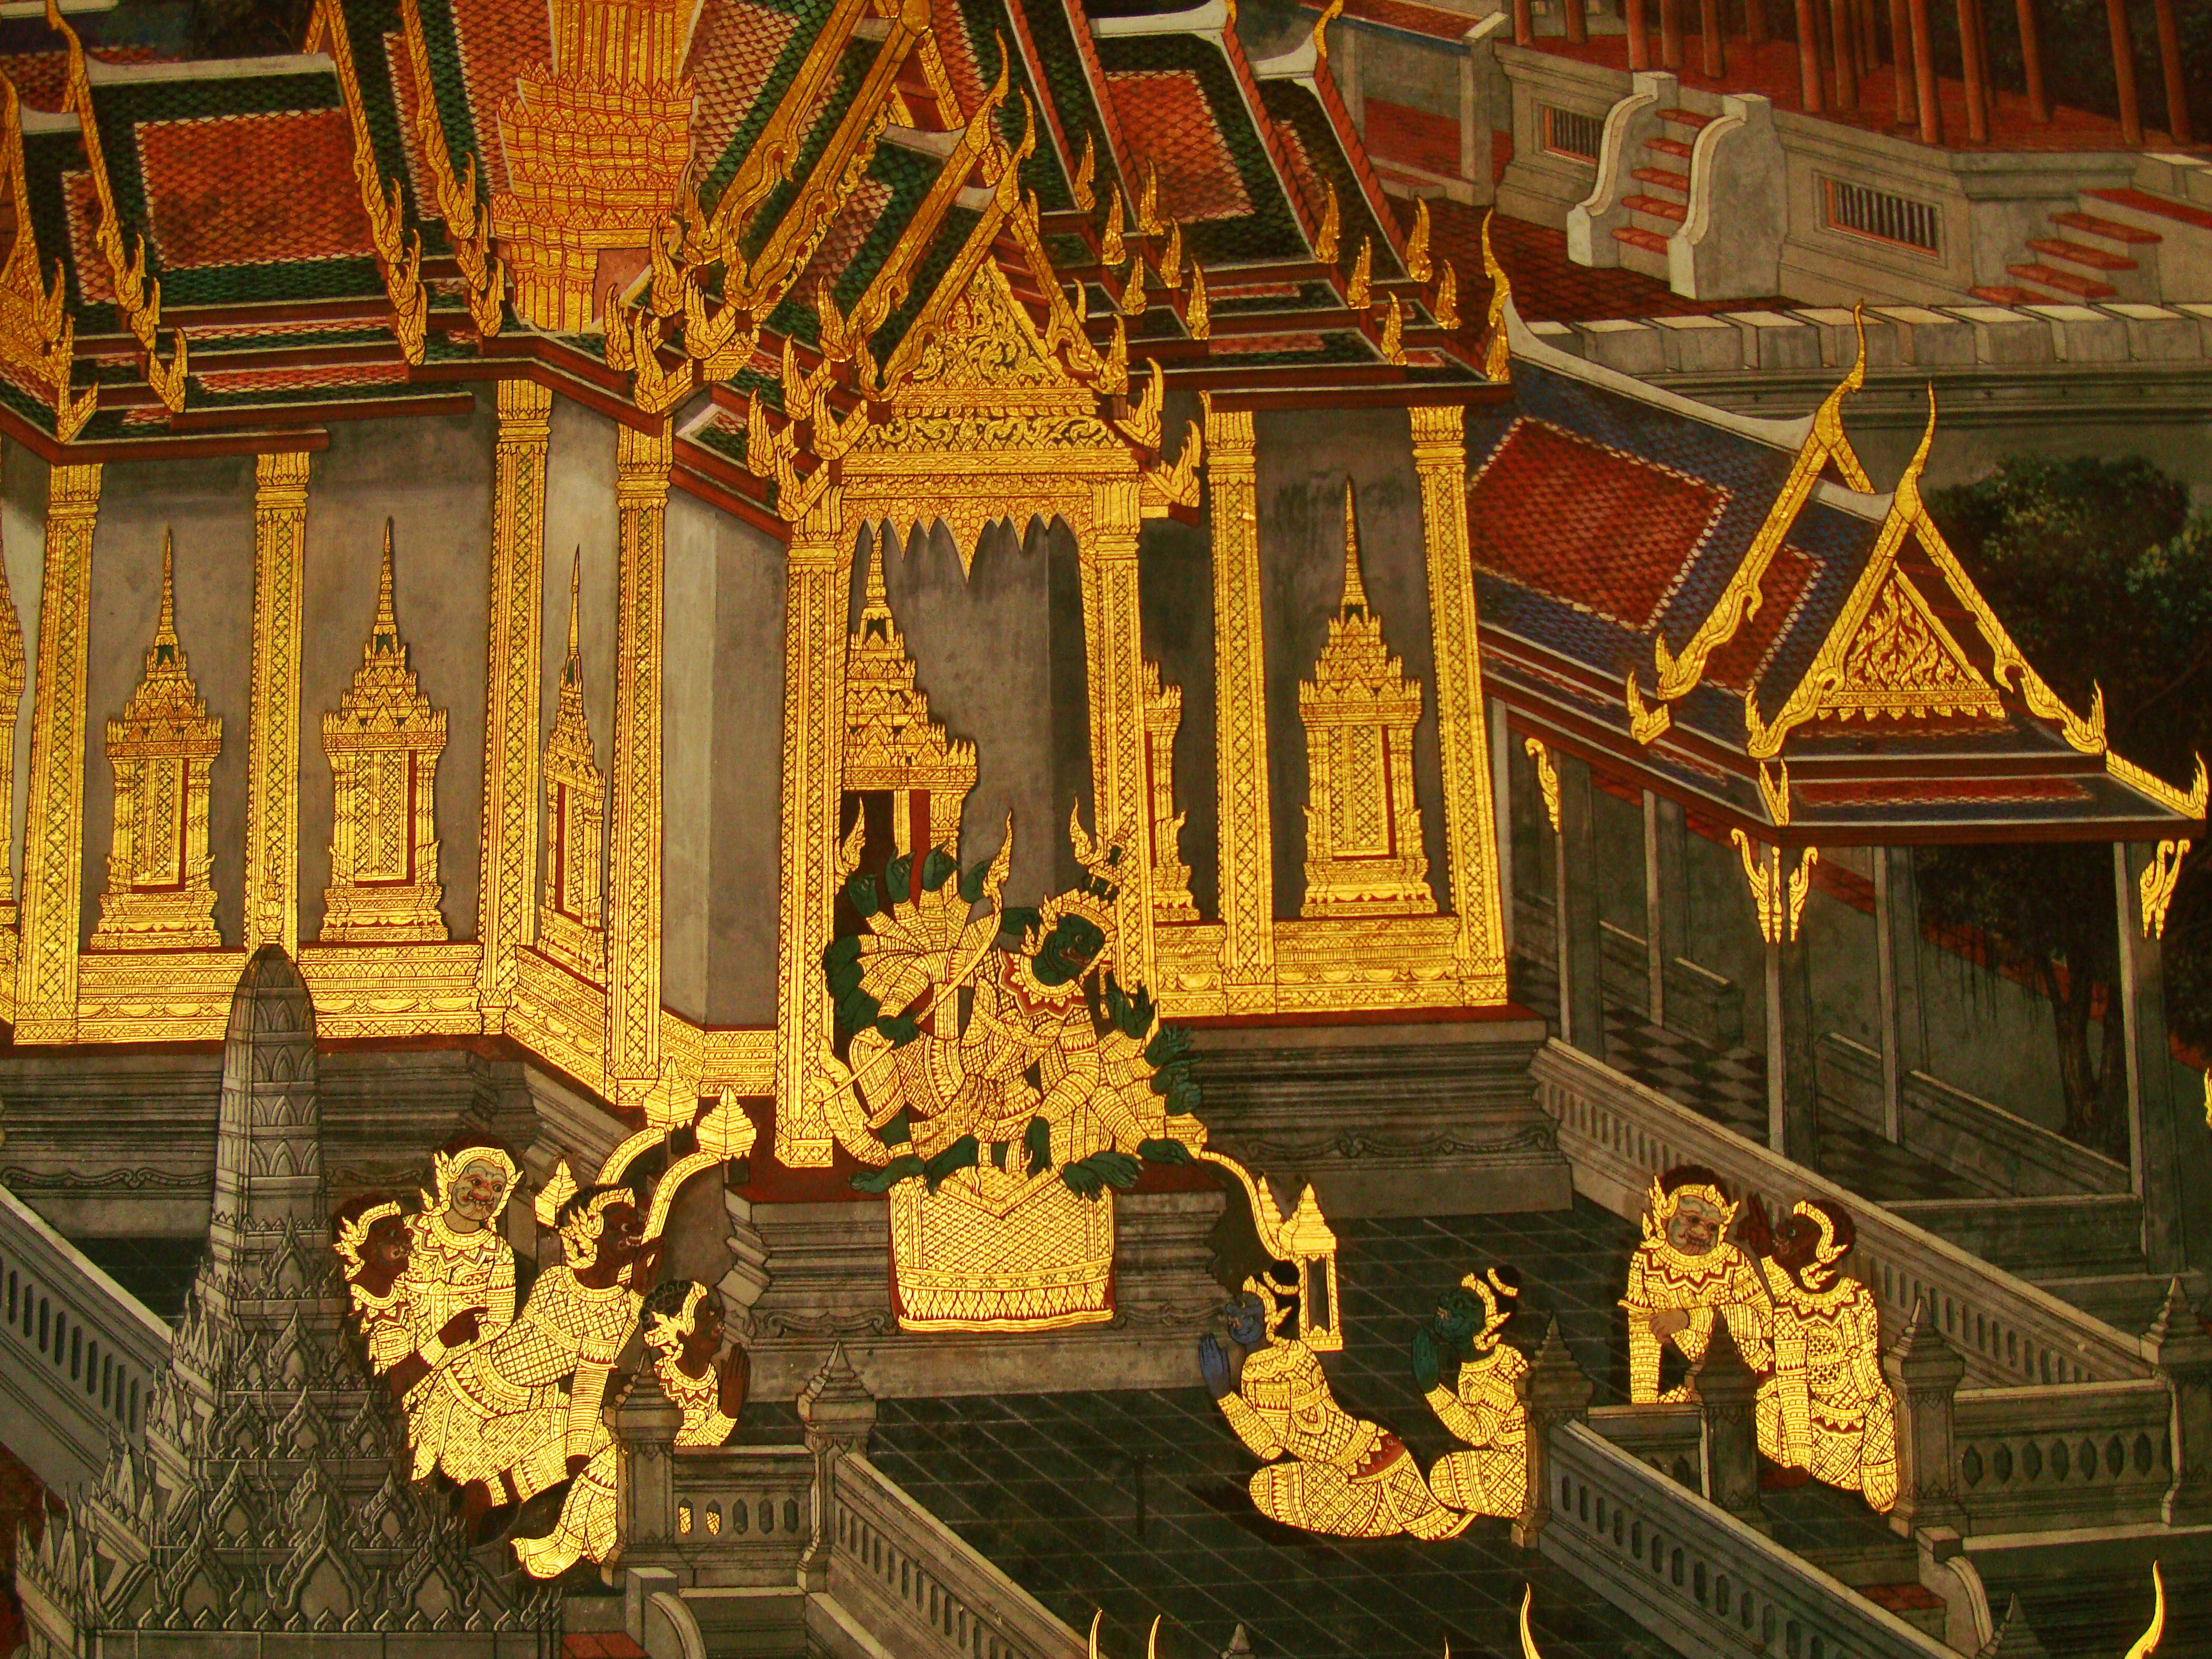 Grand Palace Gold leaf Buddhist artwork Bangkok Thailand 20